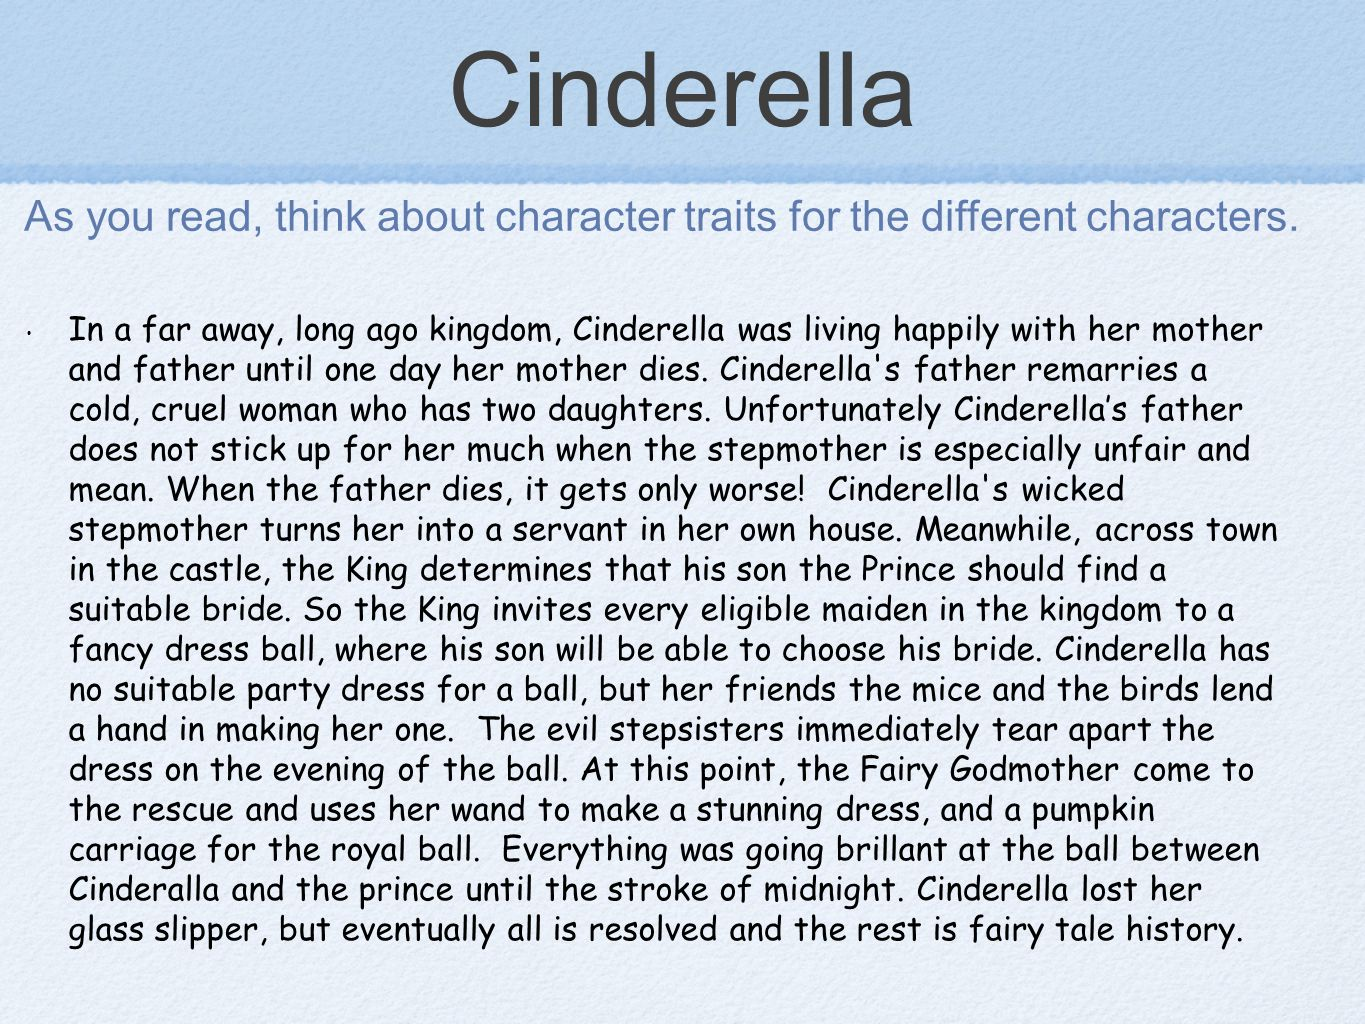 Cinderella In a far away, long ago kingdom, Cinderella was living happily with her mother and father until one day her mother dies.